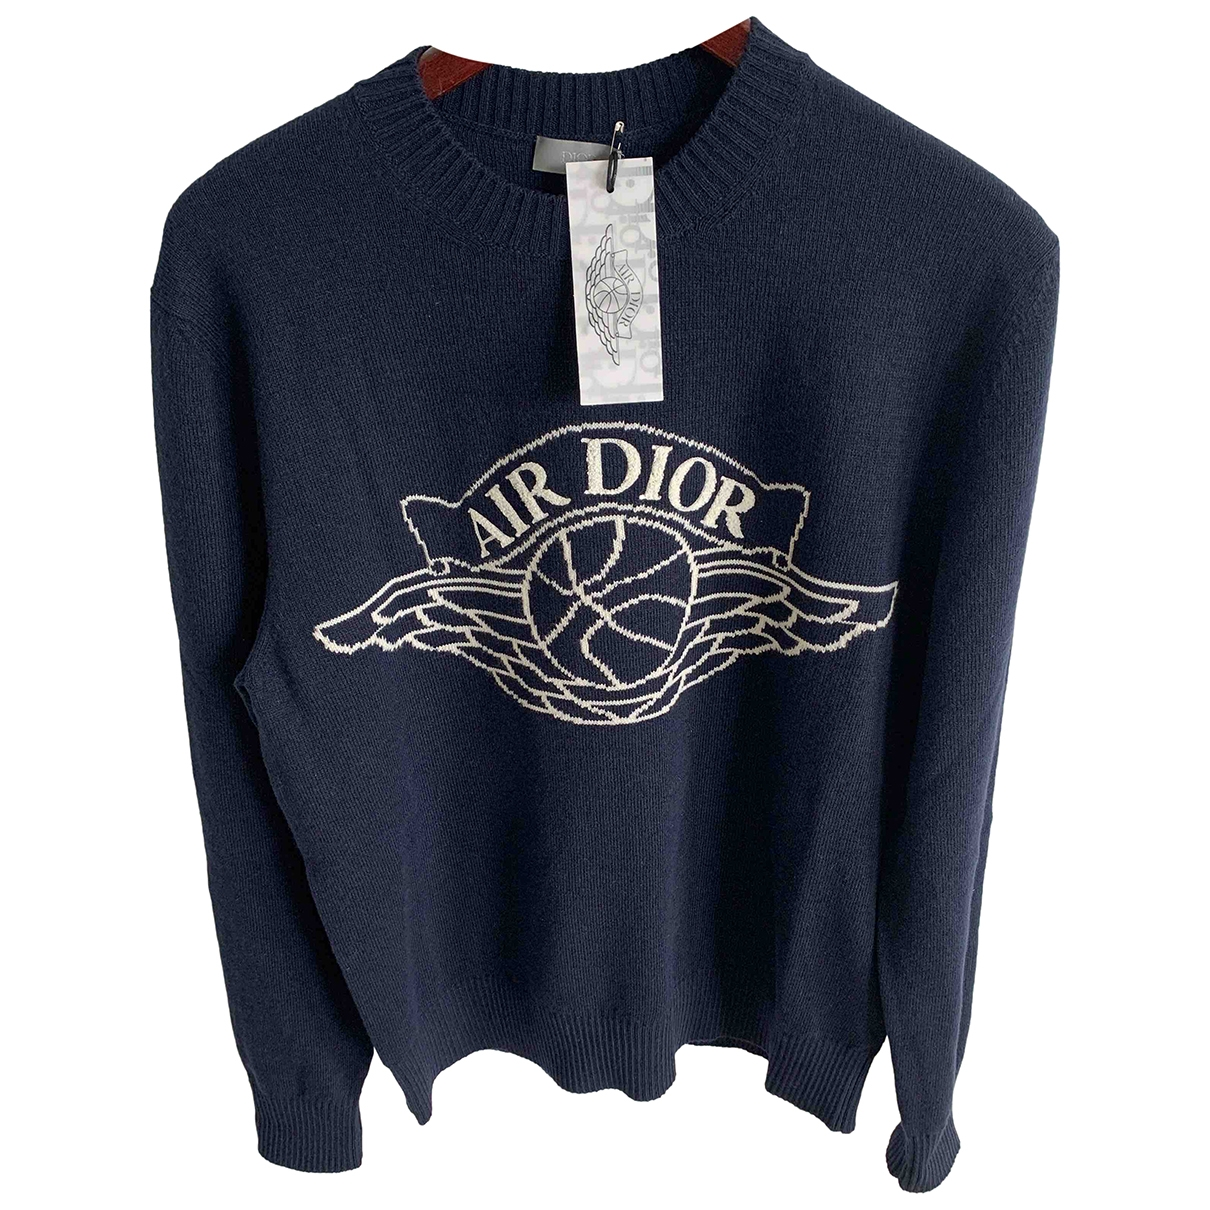 Jordan X Dior \N Navy Cashmere Knitwear & Sweatshirts for Men S International